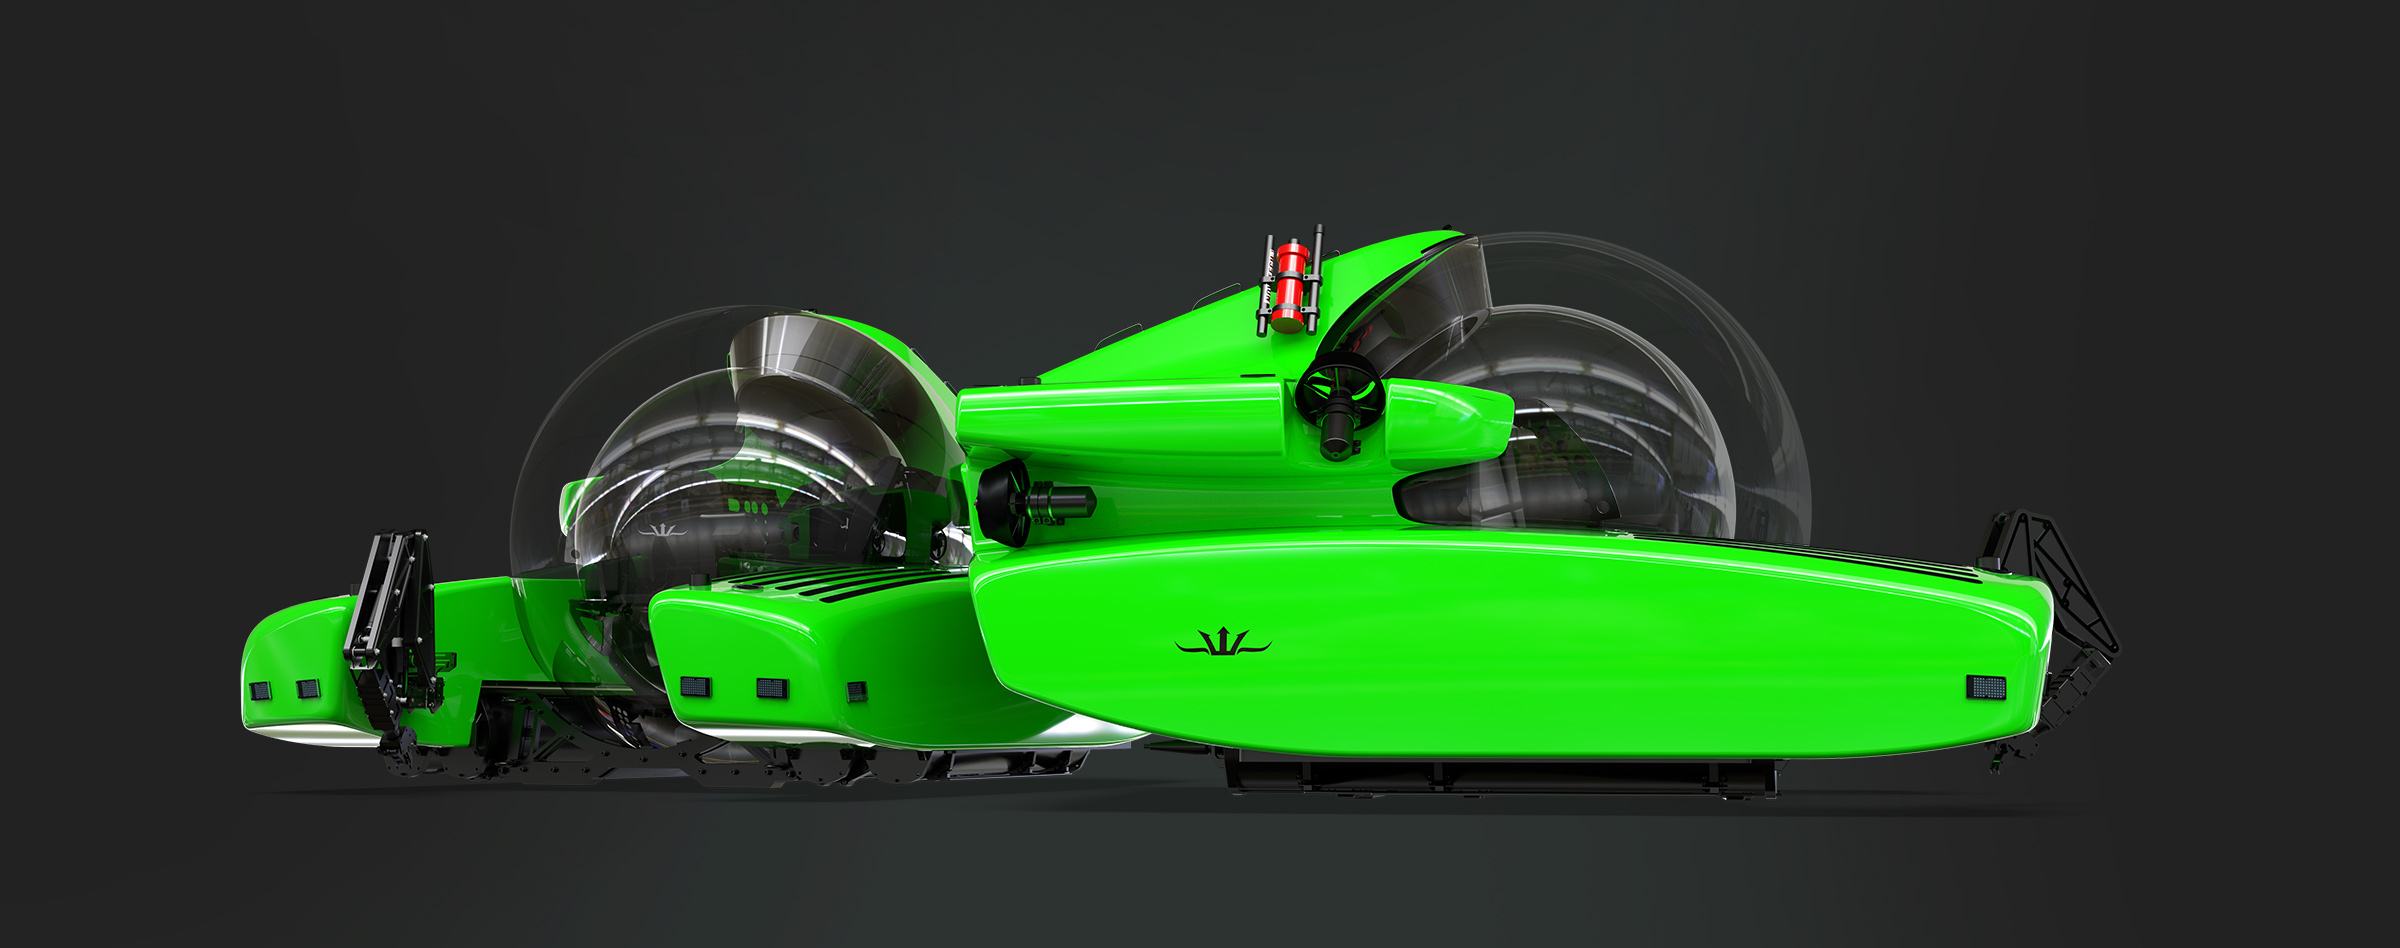 Triton 7500/3 submersible in electric green